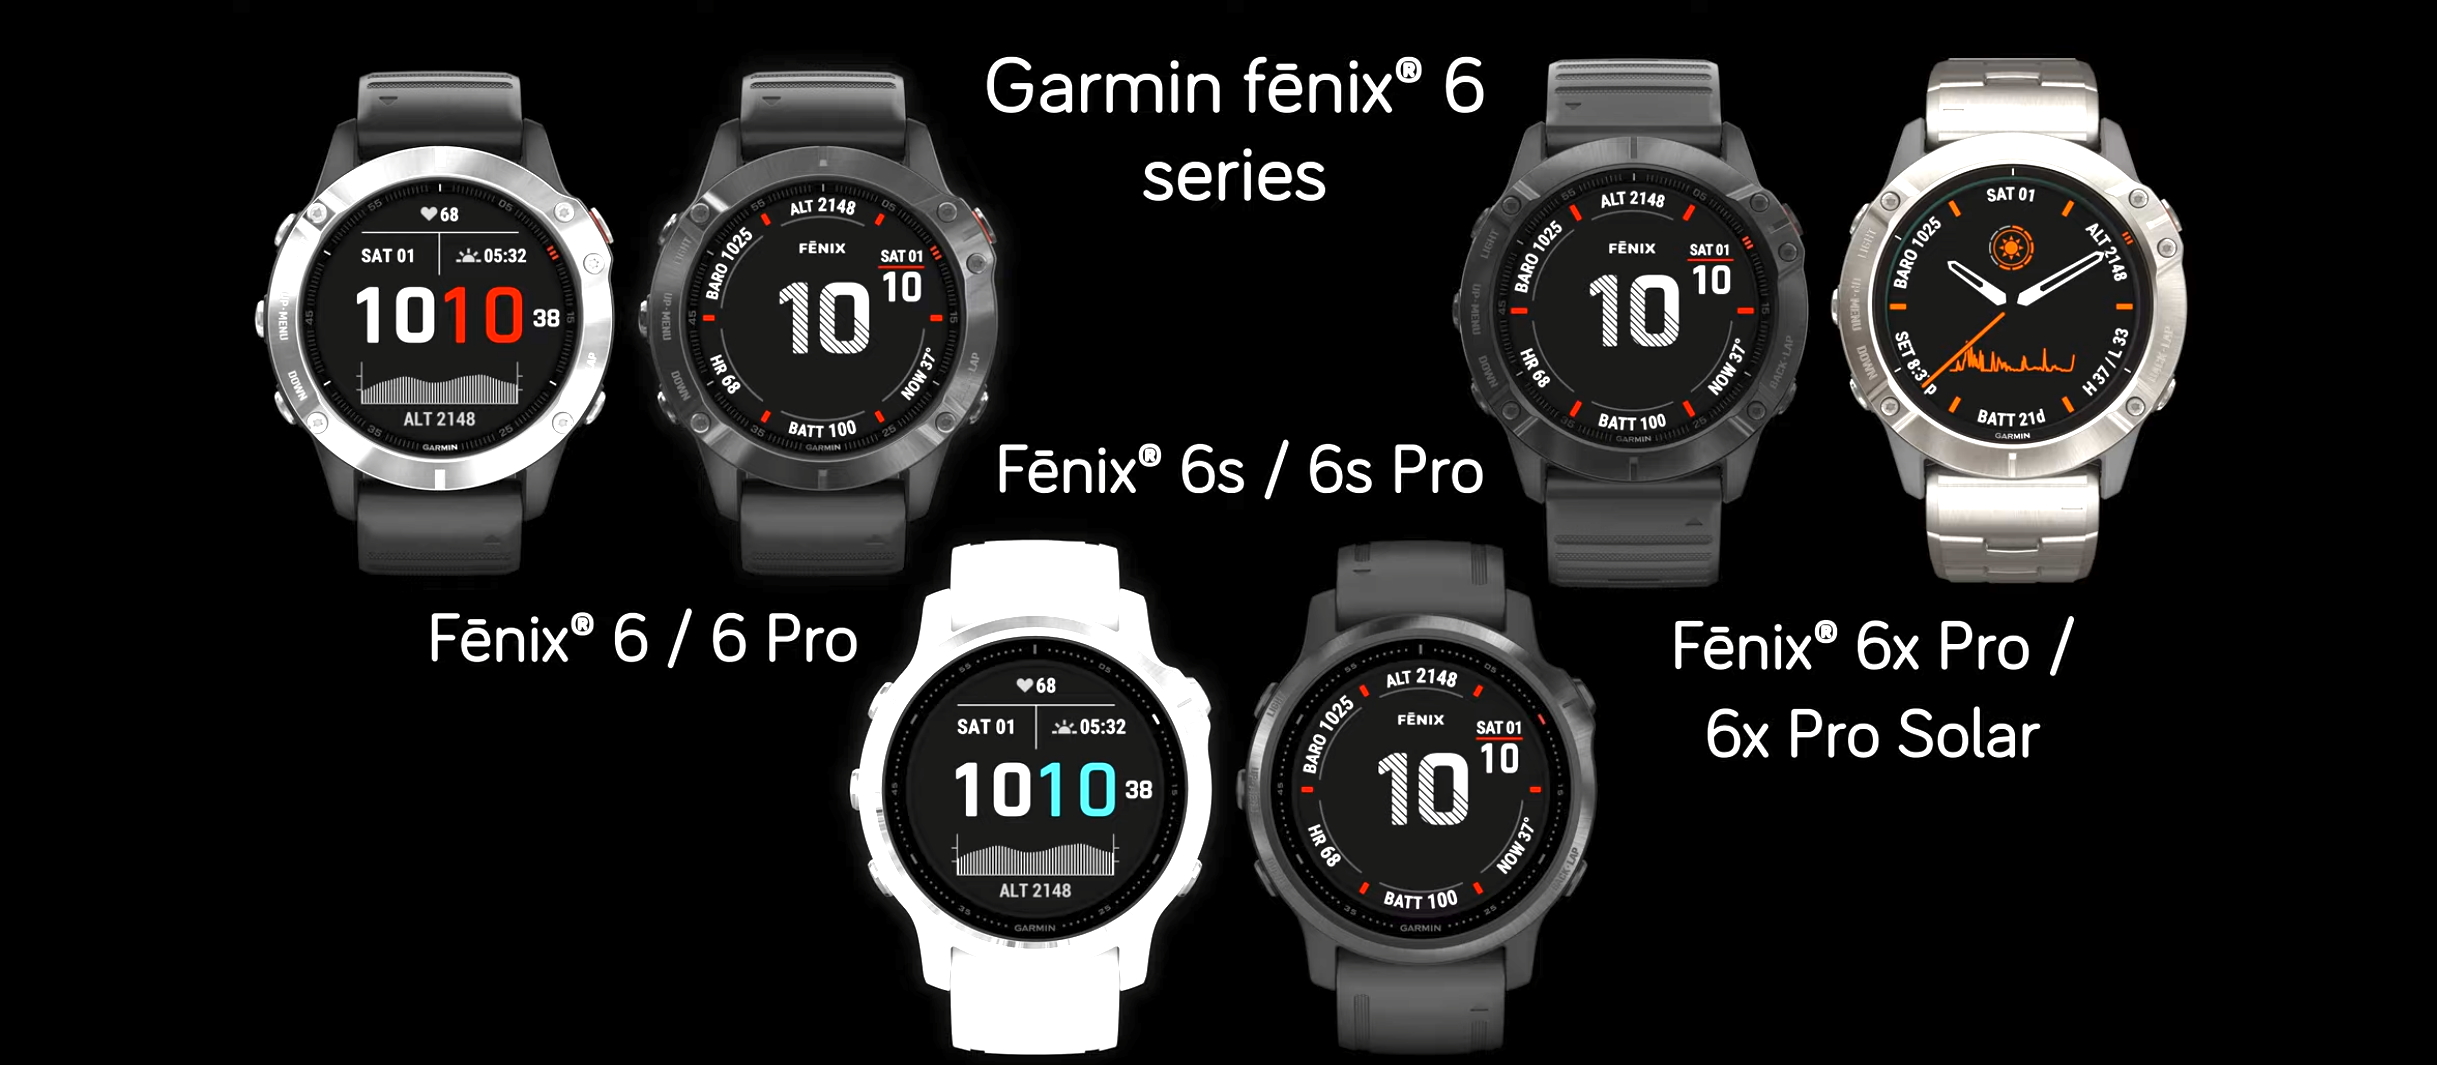 Photo of Garmin Fenix 6 Series Leaked includes Pro model and 6x Pro Solar – Key features revealed